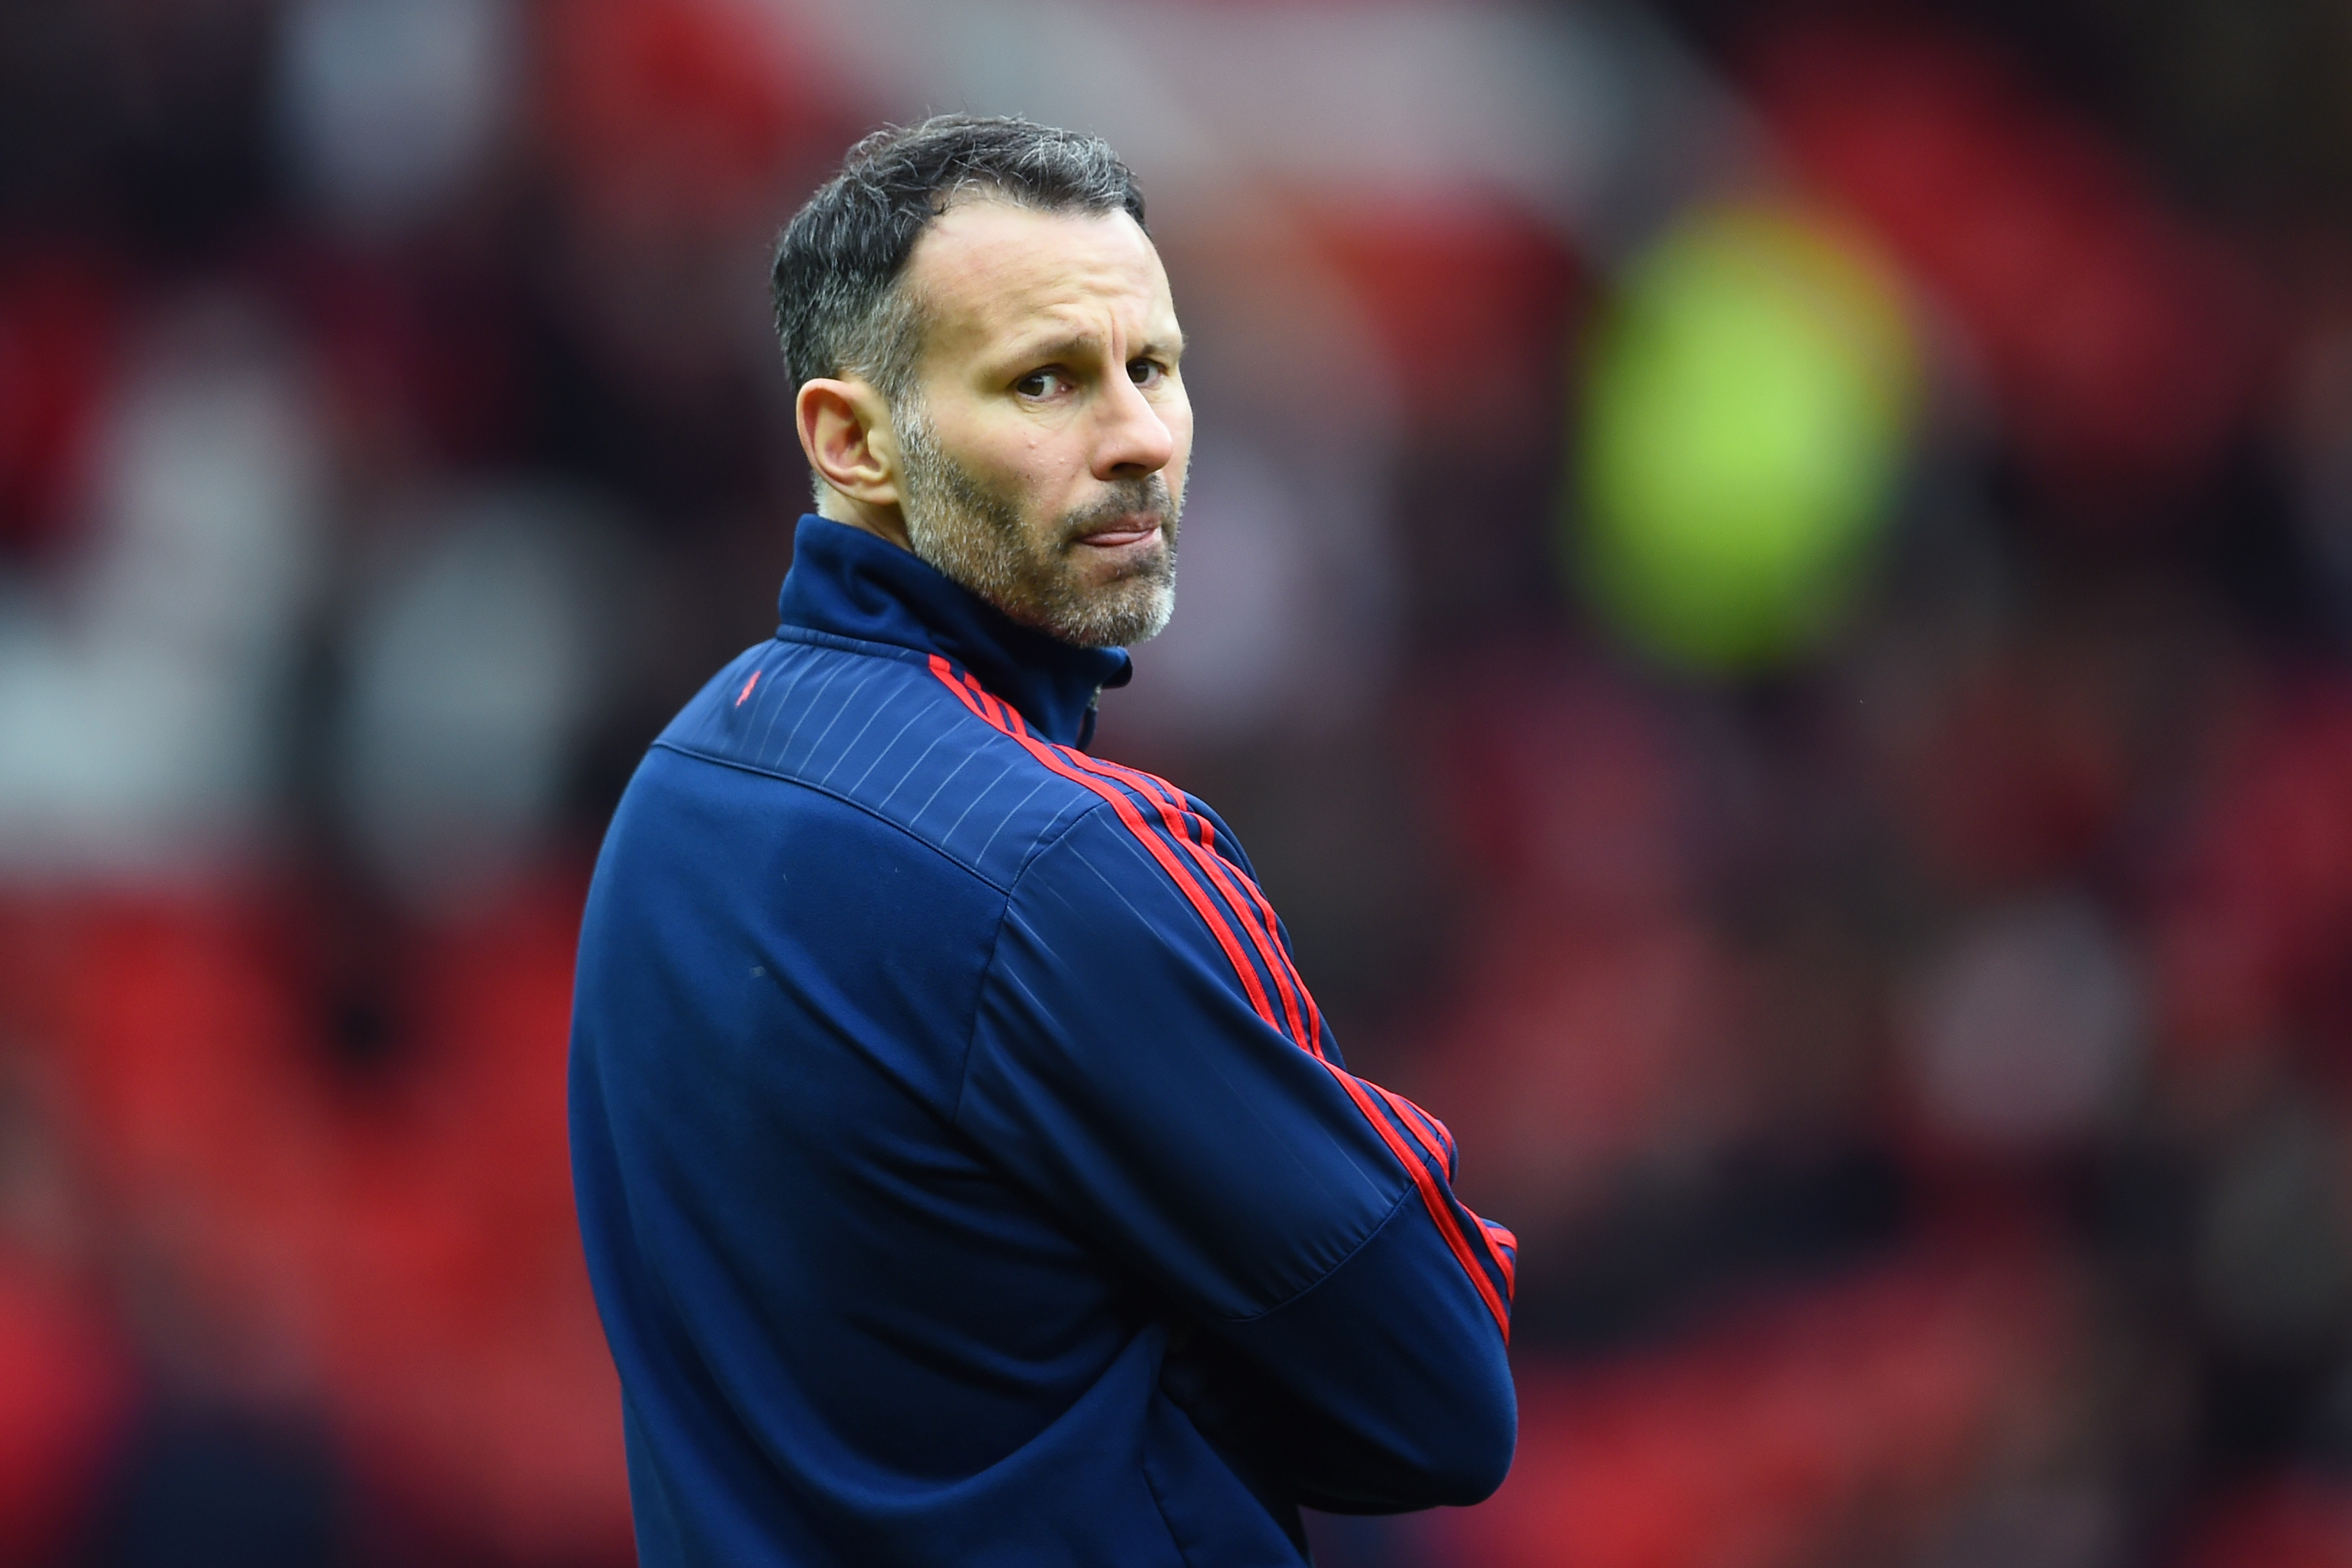 Farewell to a legend! Manchester United will never have another Ryan Giggs